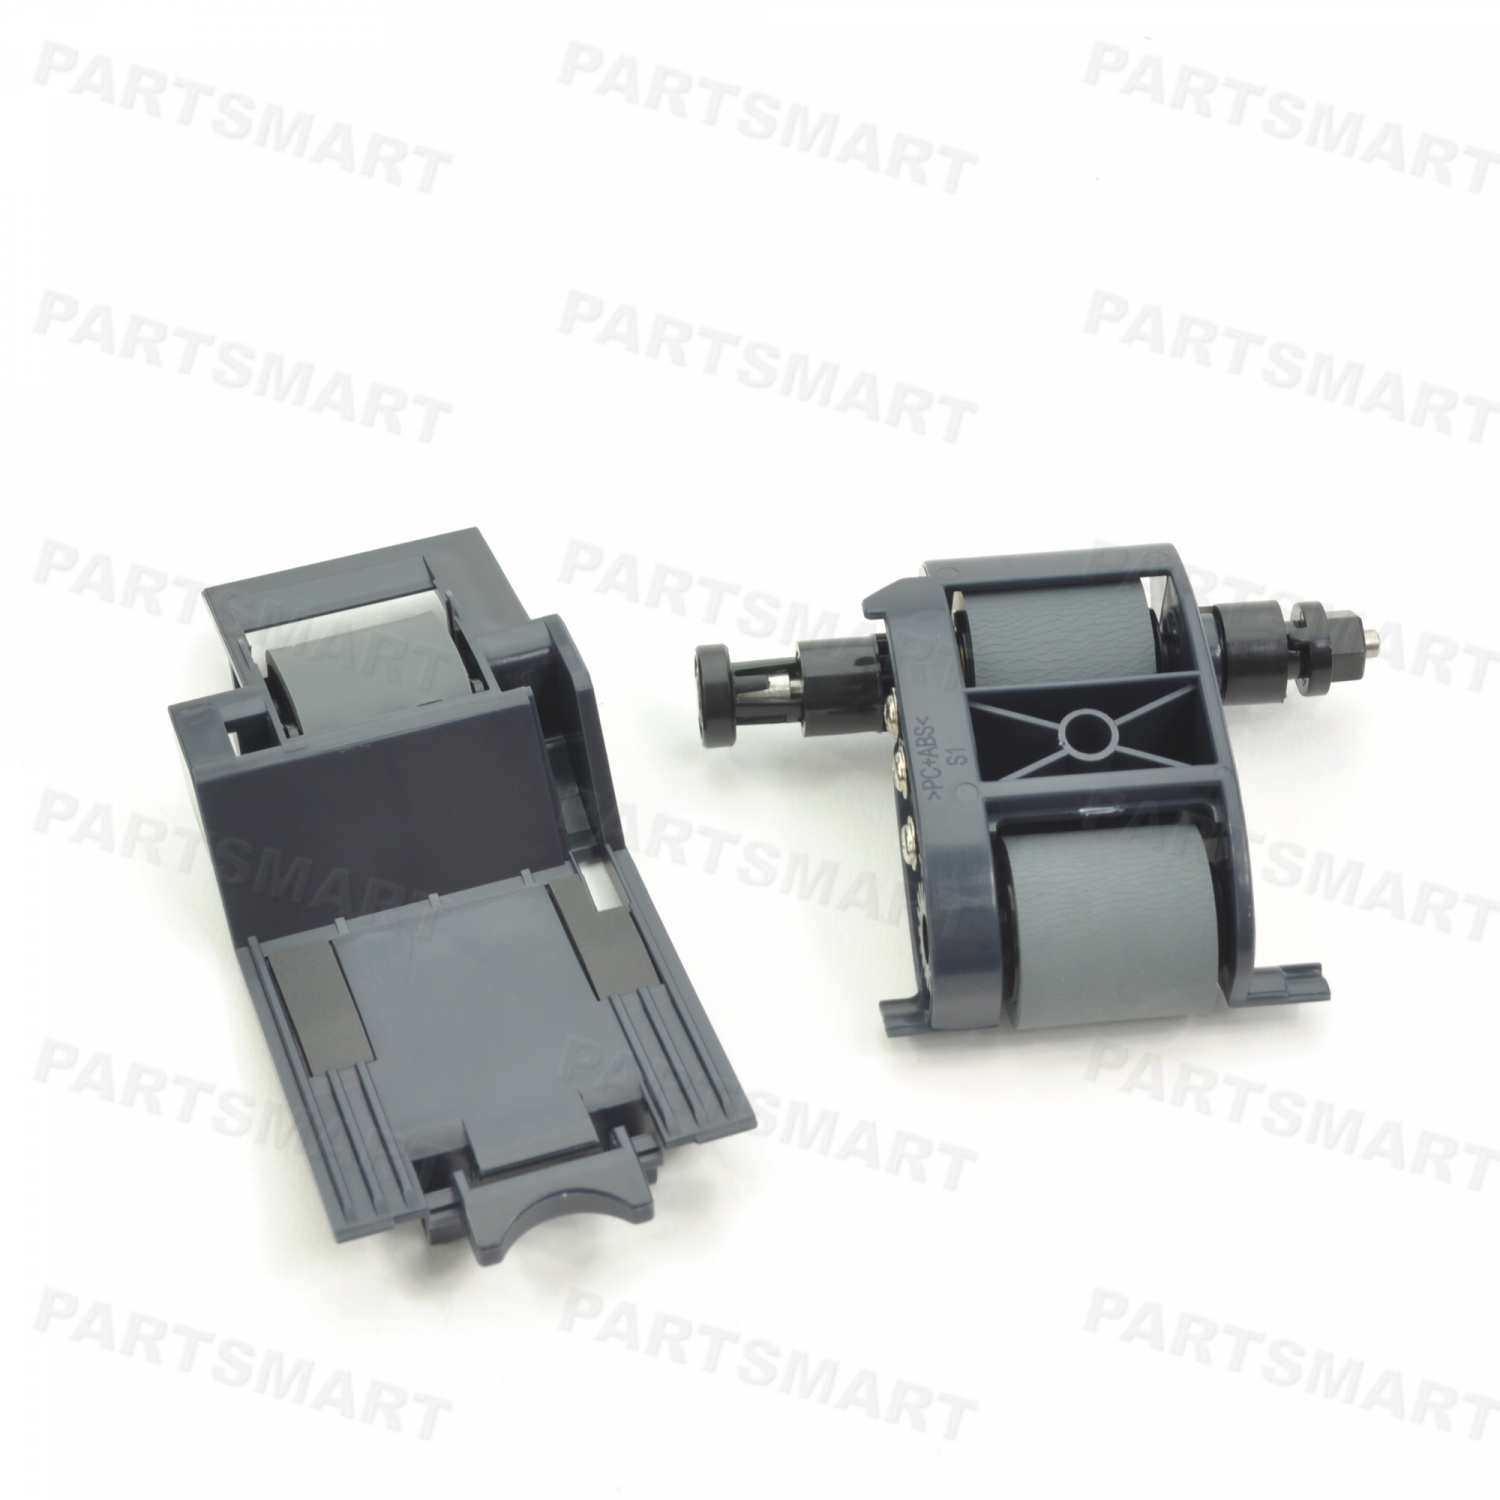 L2725-60002 L2718A ADF Roller Replacement Kit for HP LaserJet Enterprise M525 MFP, LaserJet Enterprise M630, LaserJet Enterprise M725, Color LaserJet Enterprise M575, Color LaserJet Enterprise M651, Color LaserJet Enterprise M680